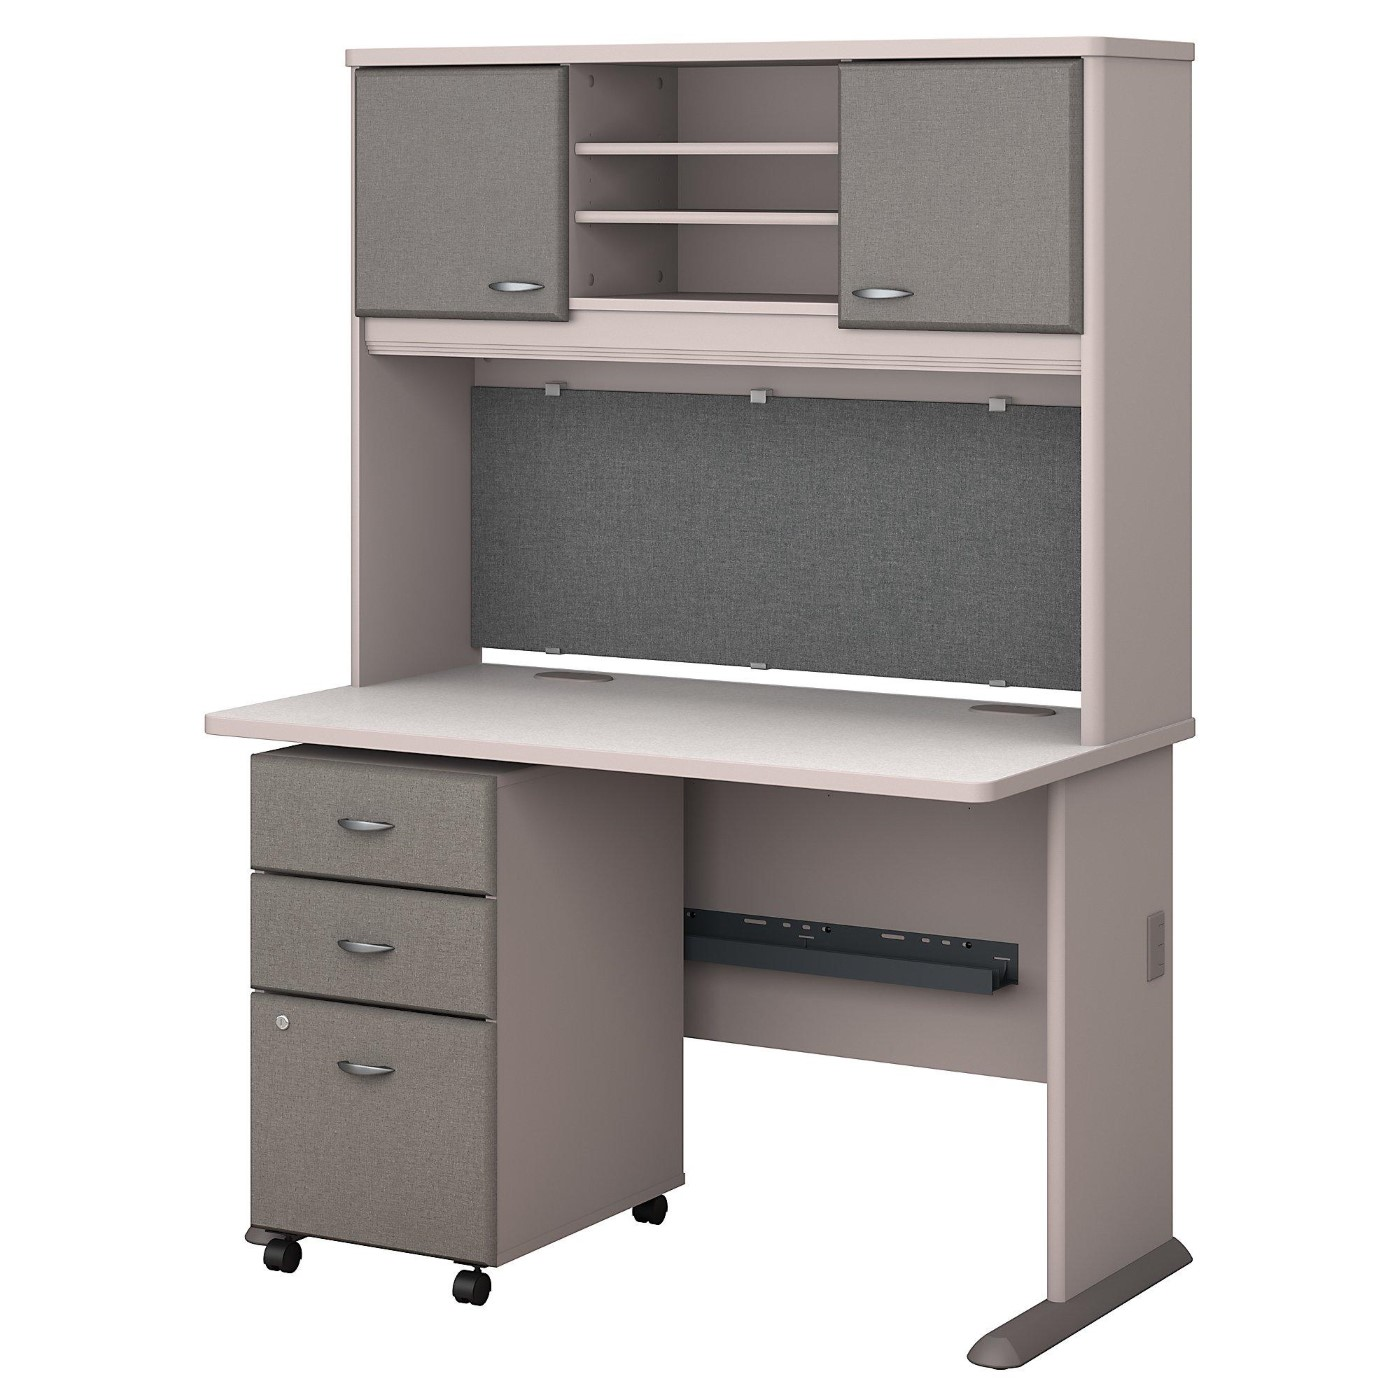 BUSH BUSINESS FURNITURE SERIES A 48W DESK WITH HUTCH AND MOBILE FILE CABINET. FREE SHIPPING.